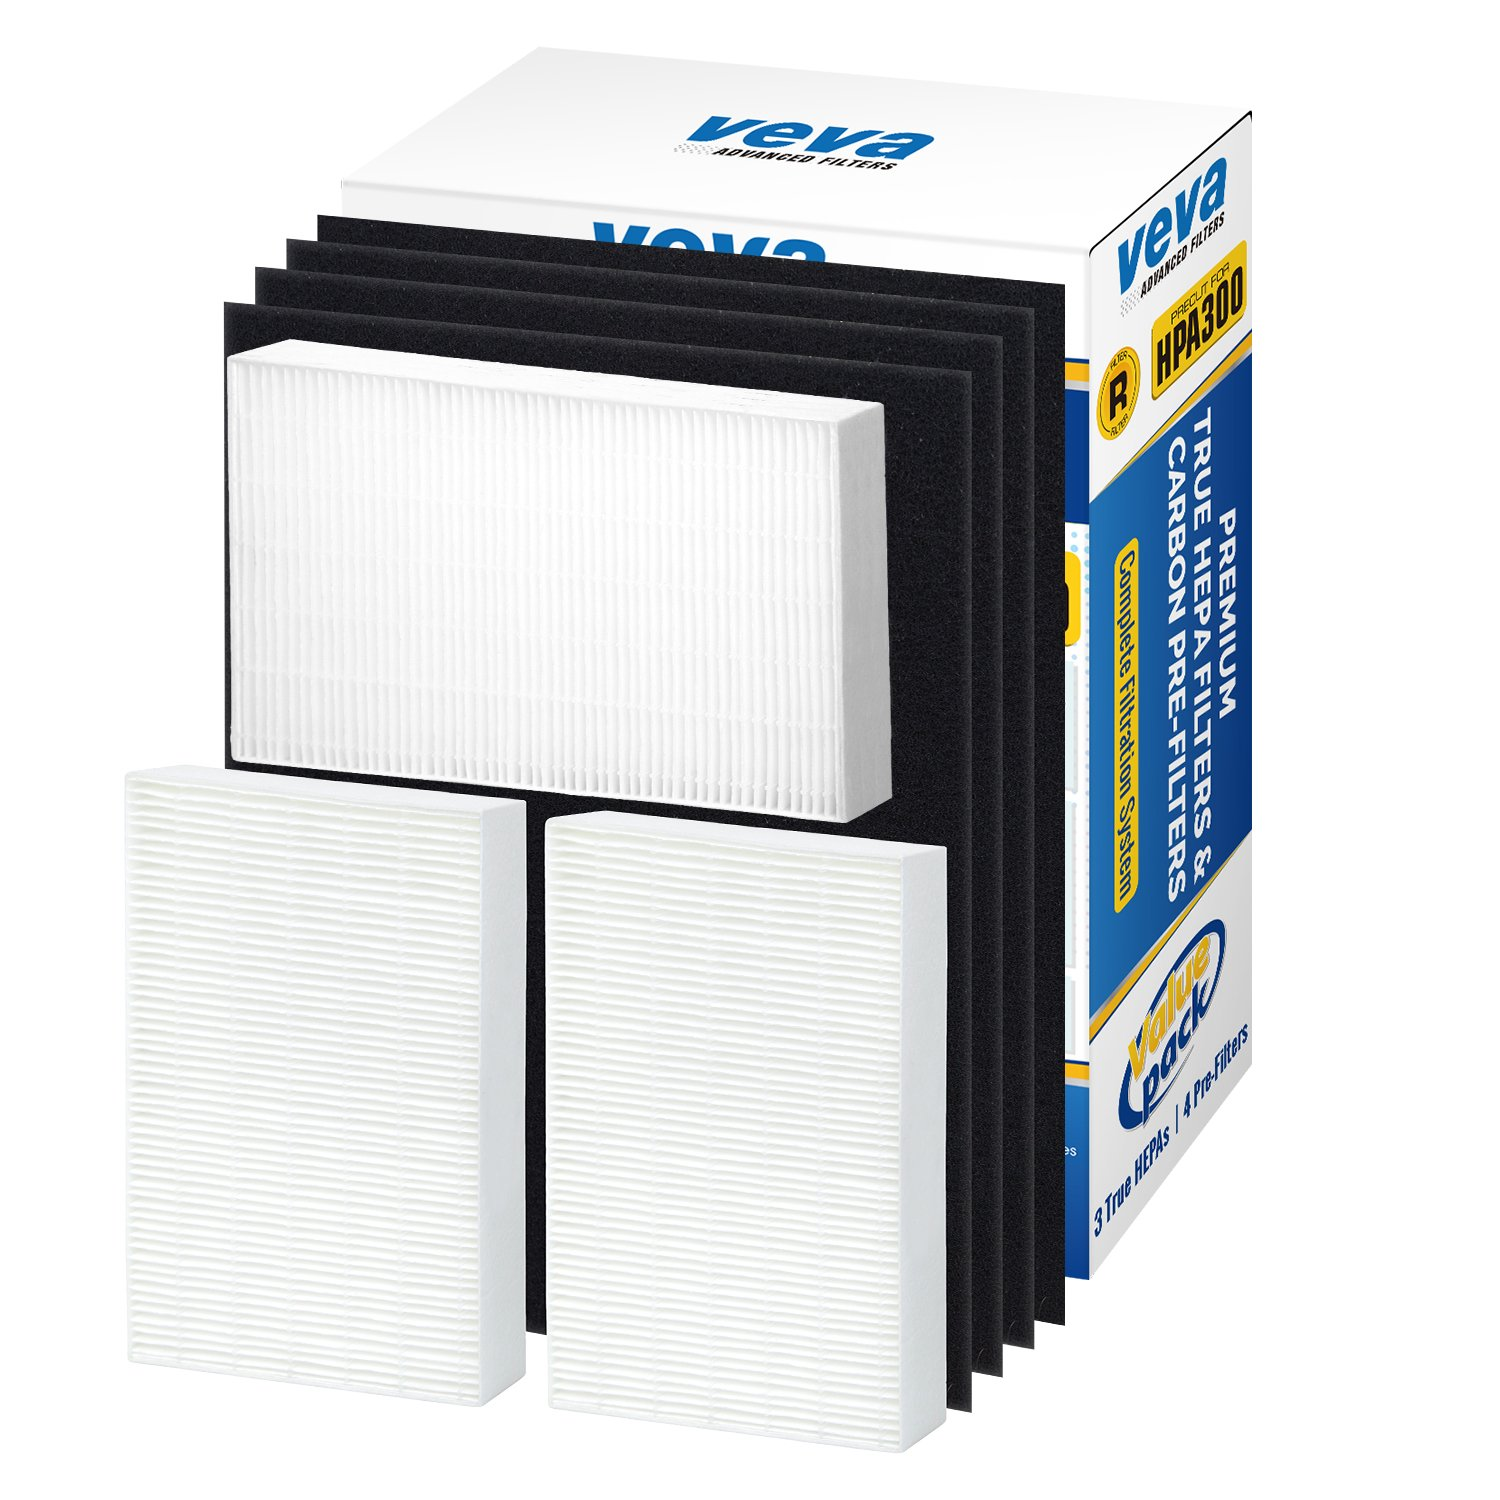 VEVA Premium True HEPA Replacement Filter 3 Pack Including 4 Precut Activated Carbon Pre-Filters for HPA300 compatible with Honeywell Air Purifier 300 and Filter R